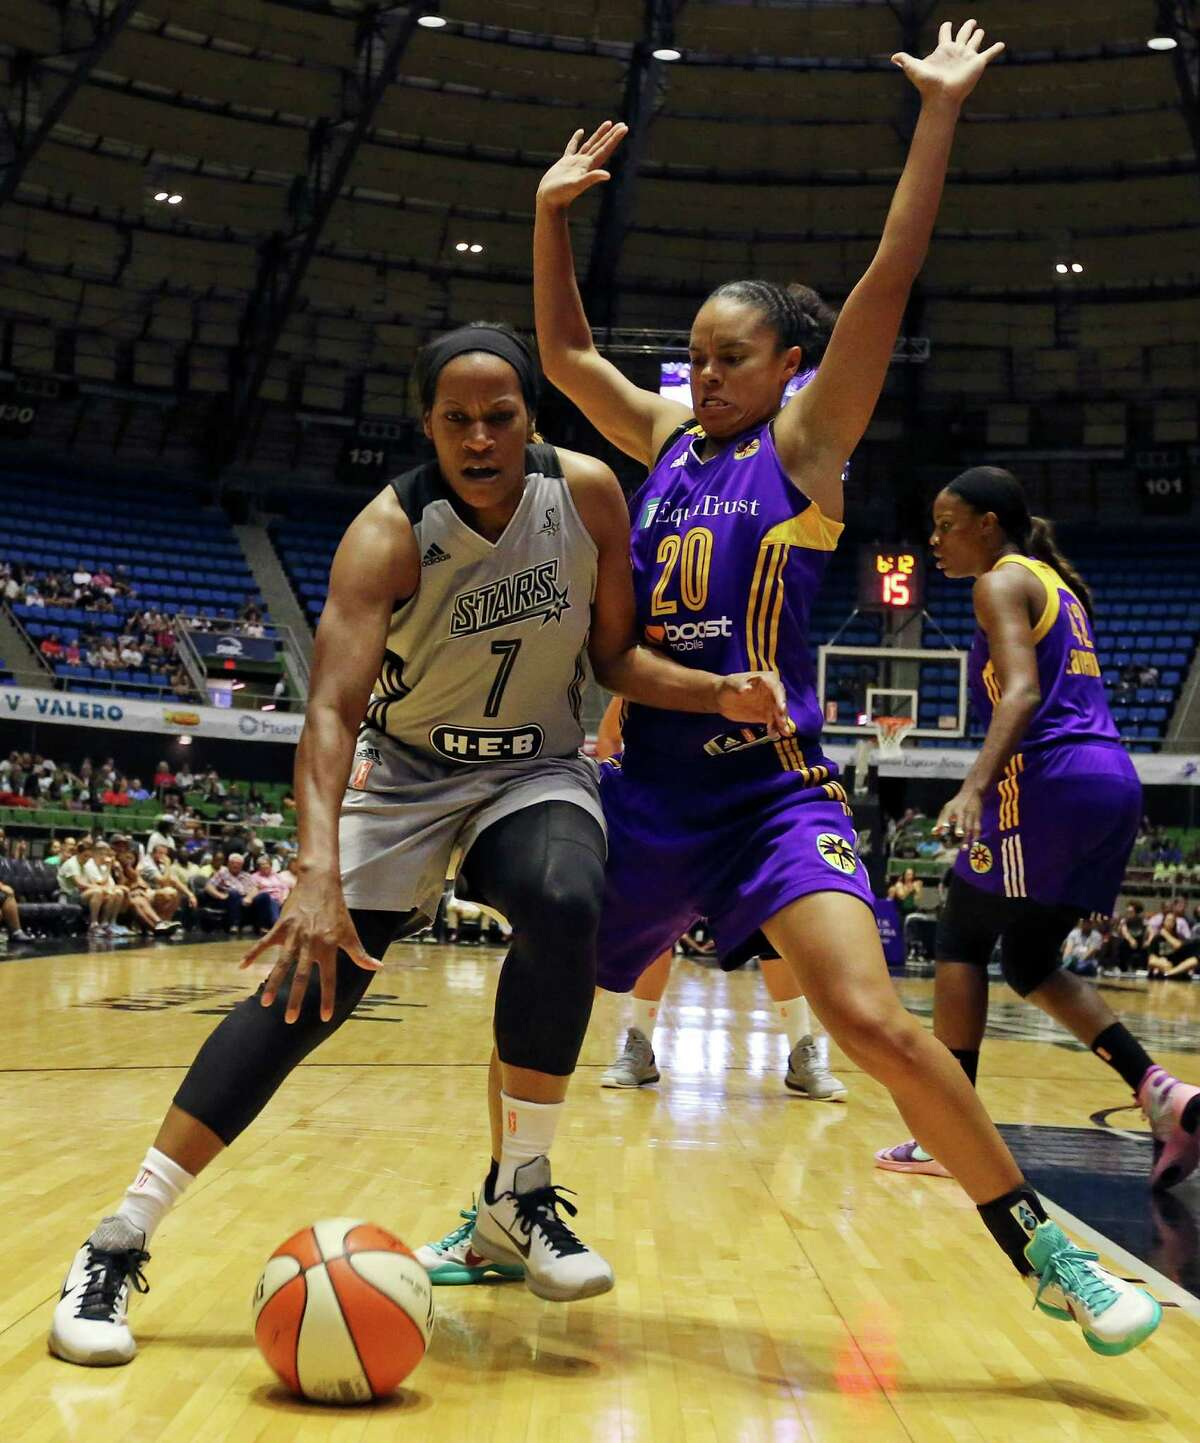 San Antonio Stars' Jia Perkins looks for room around Los Angeles Sparks' Kristi Toliver during first half action Sunday Aug. 2, 2015 at the Freeman Coliseum.